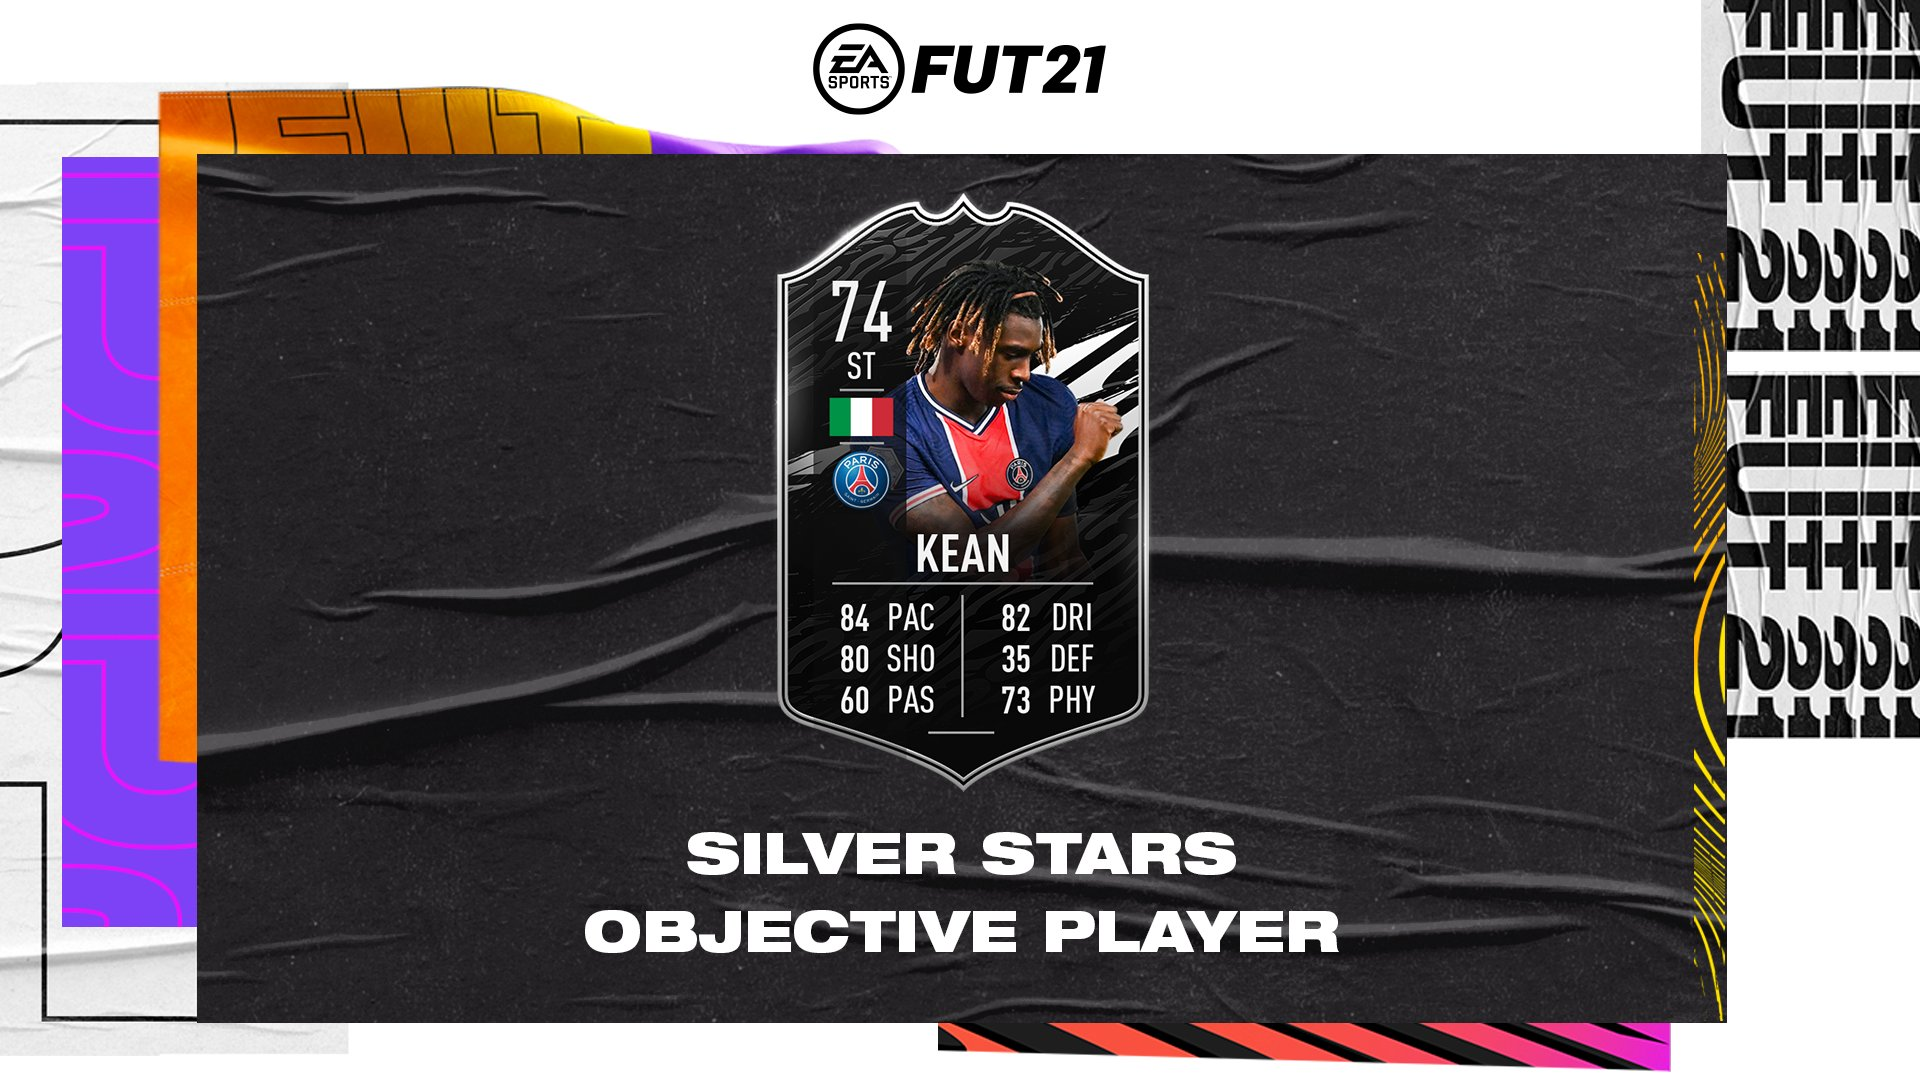 How to complete Silver Stars Kean's objectives in FIFA 21 Ultimate Team | Dot Esports